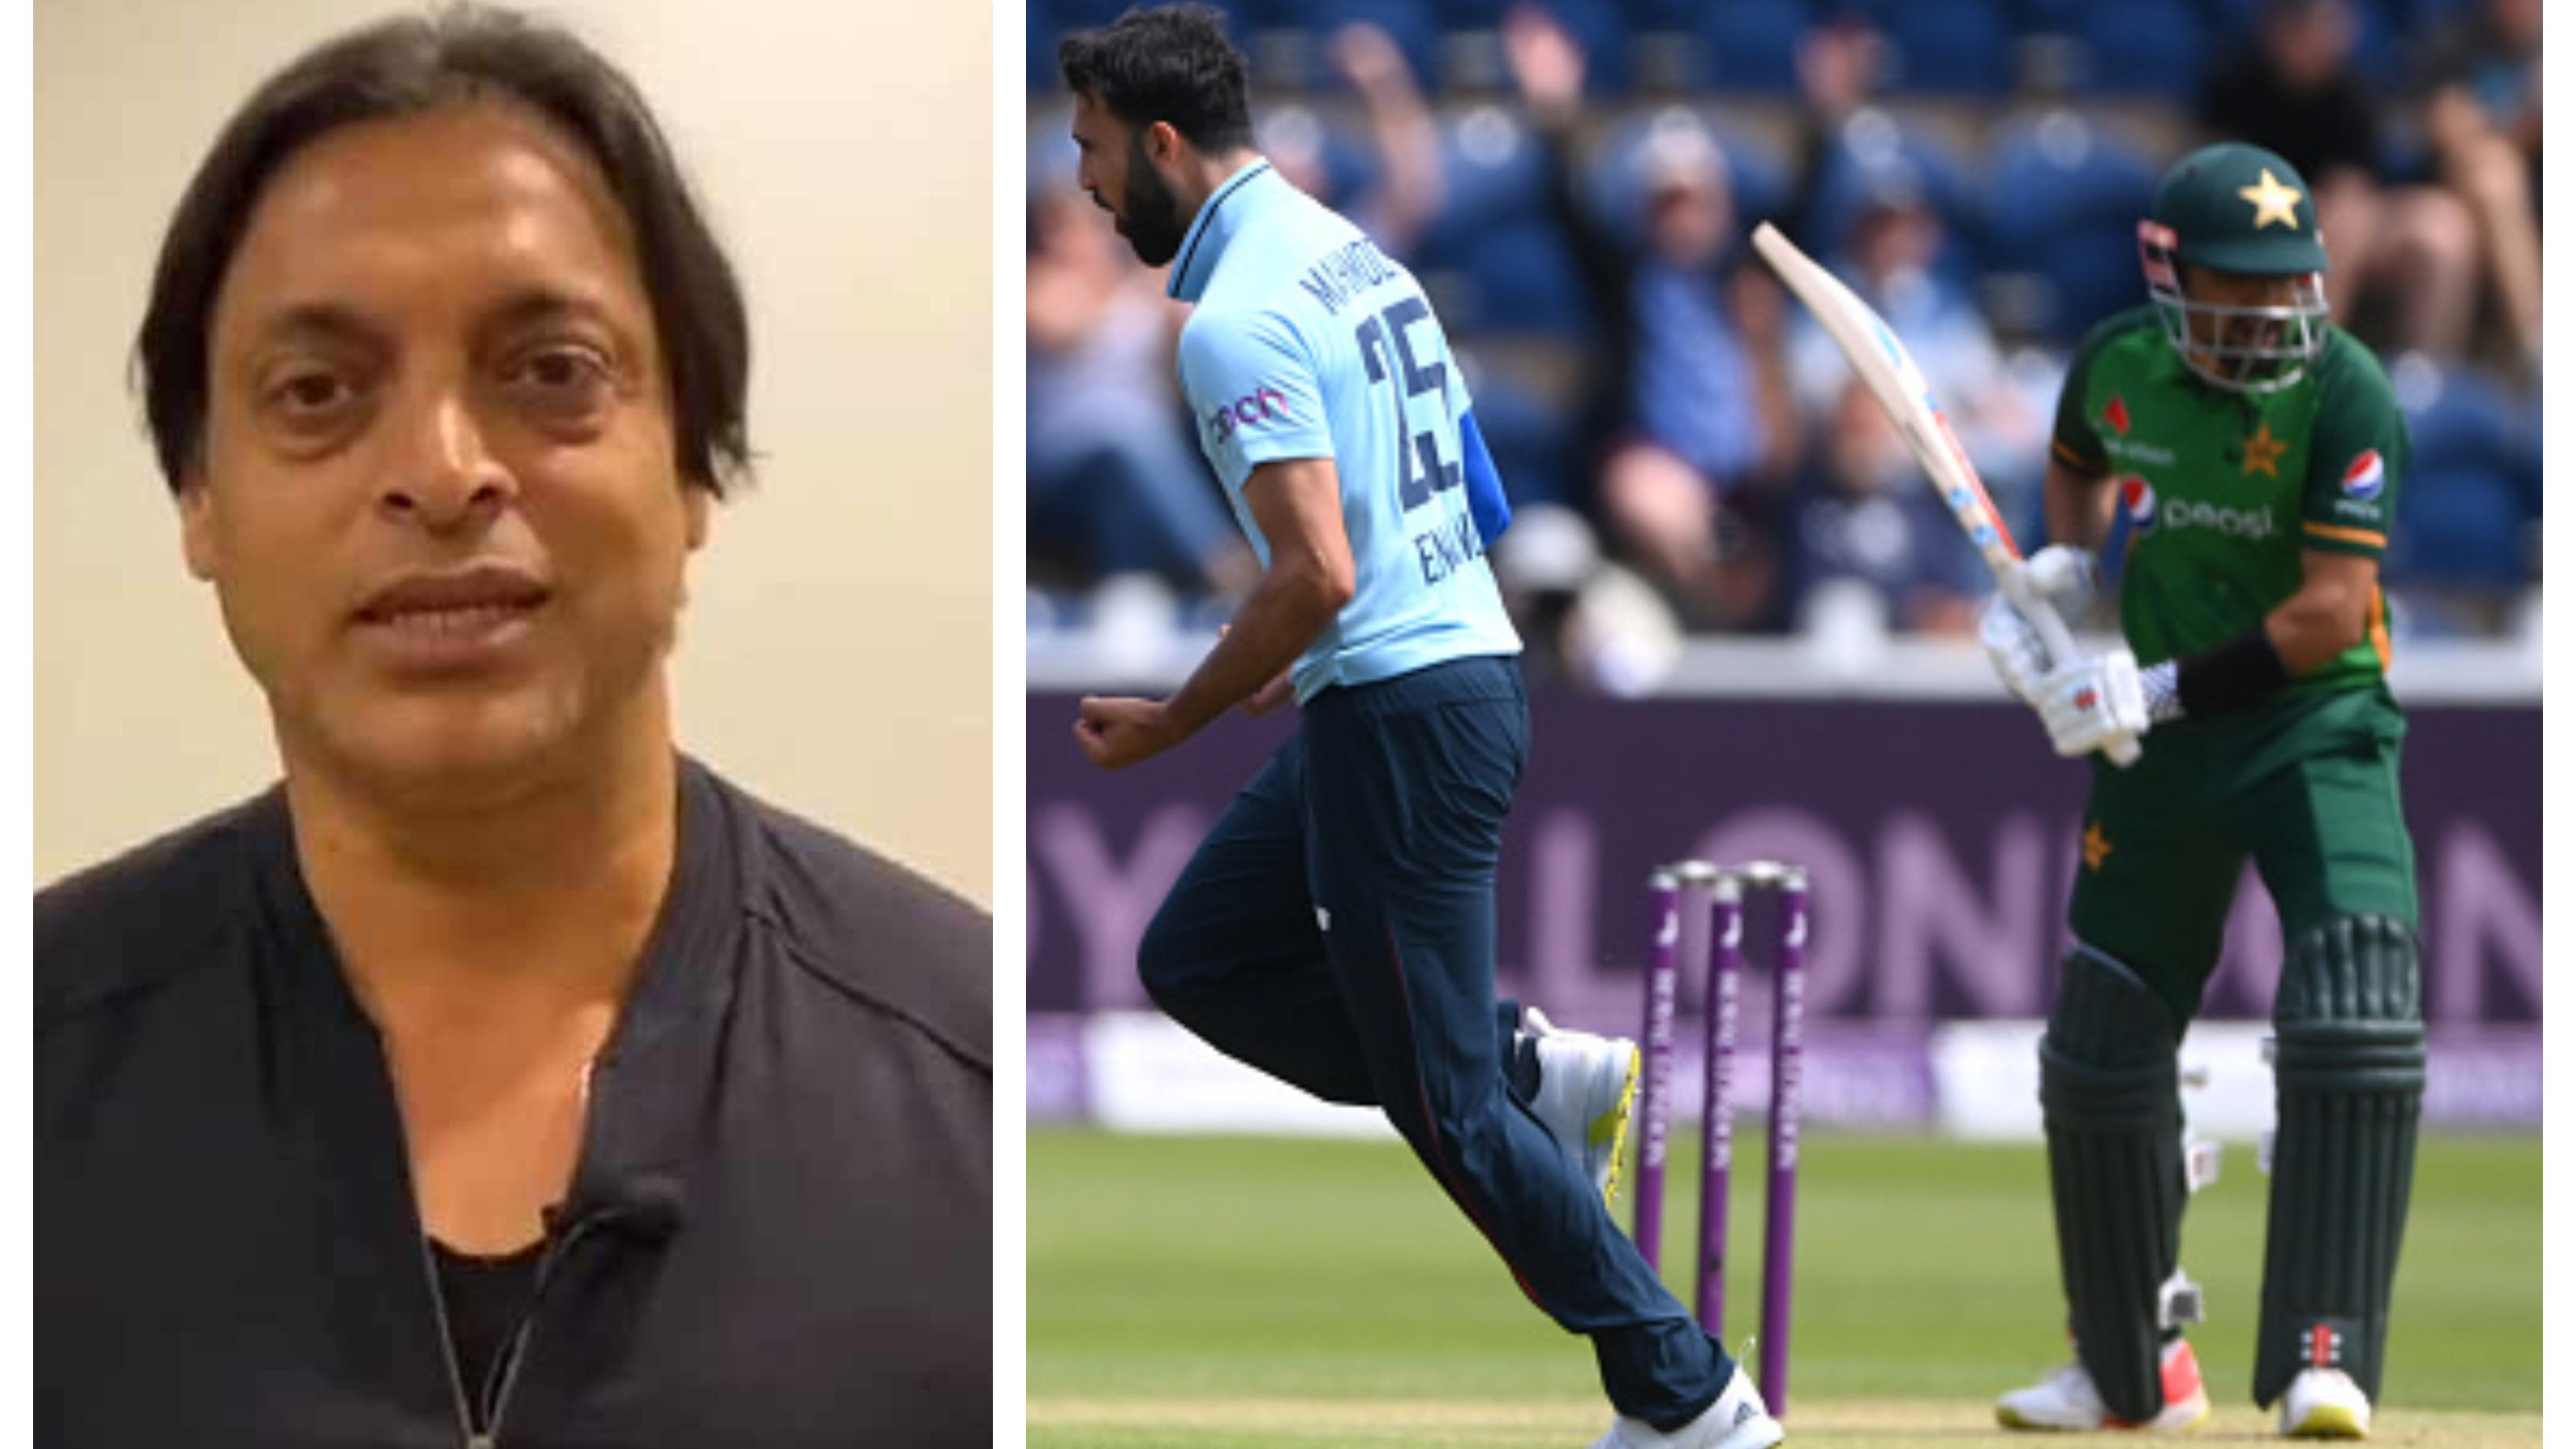 ENG v PAK 2021: 'If you can't handle that seam, what will you do?', Shoaib Akhtar slams Pakistan's outing in 1st ODI